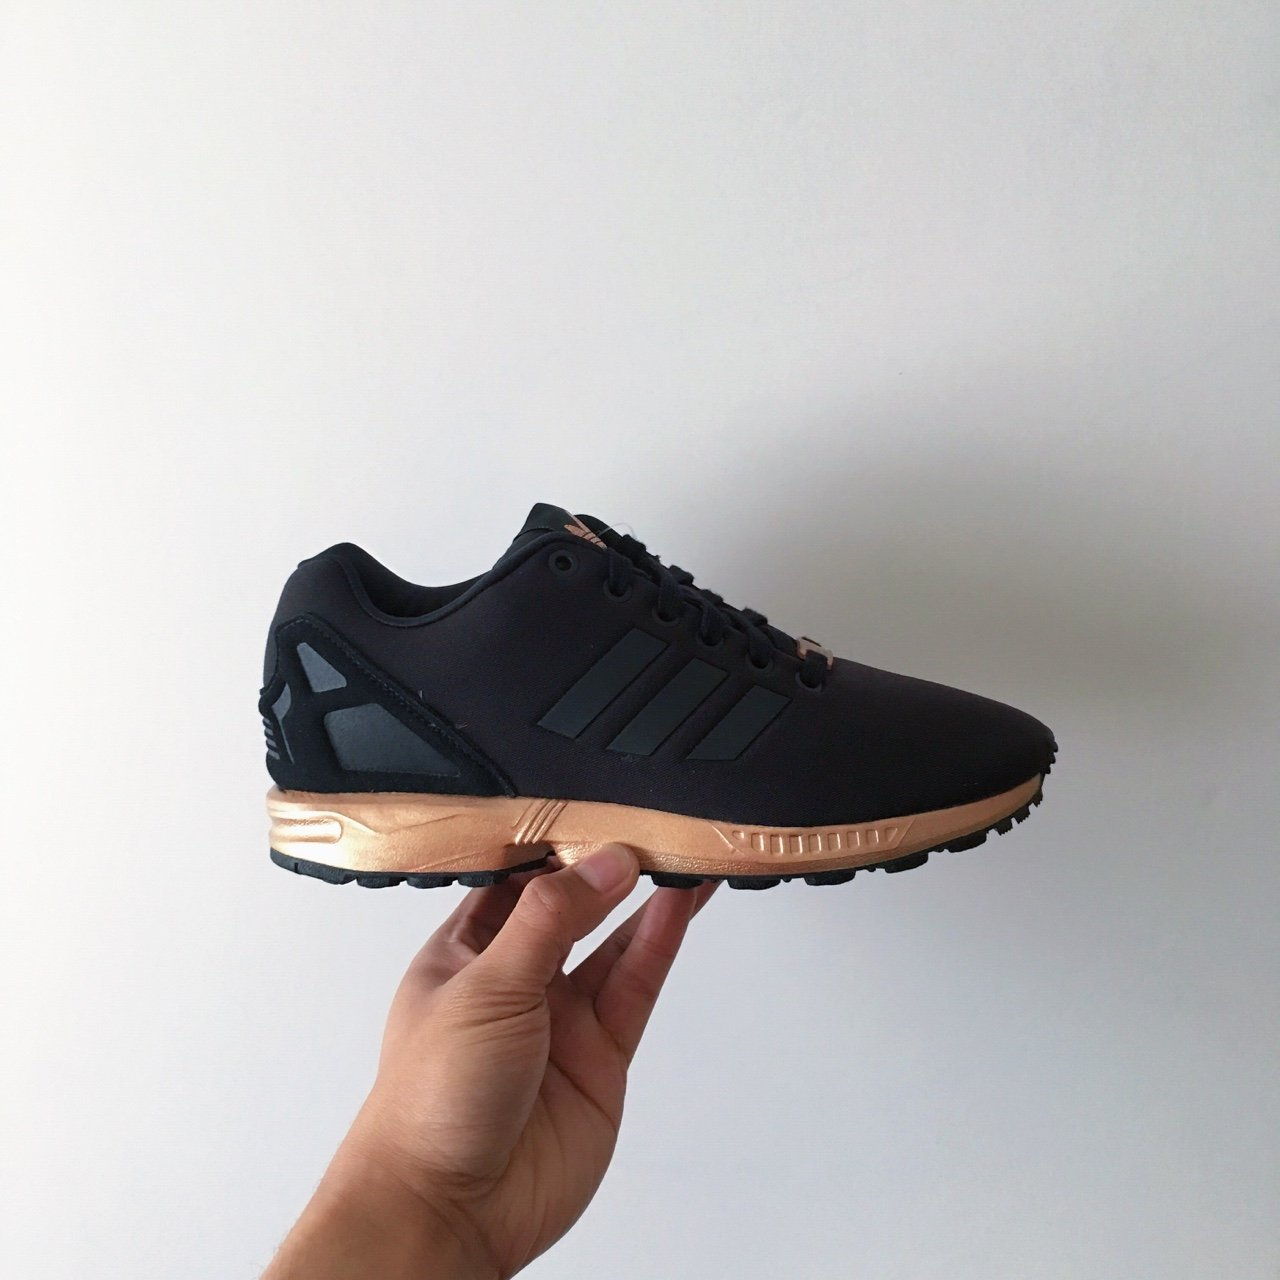 a088fd243c7 Adidas ZX Flux Copper Black Gold